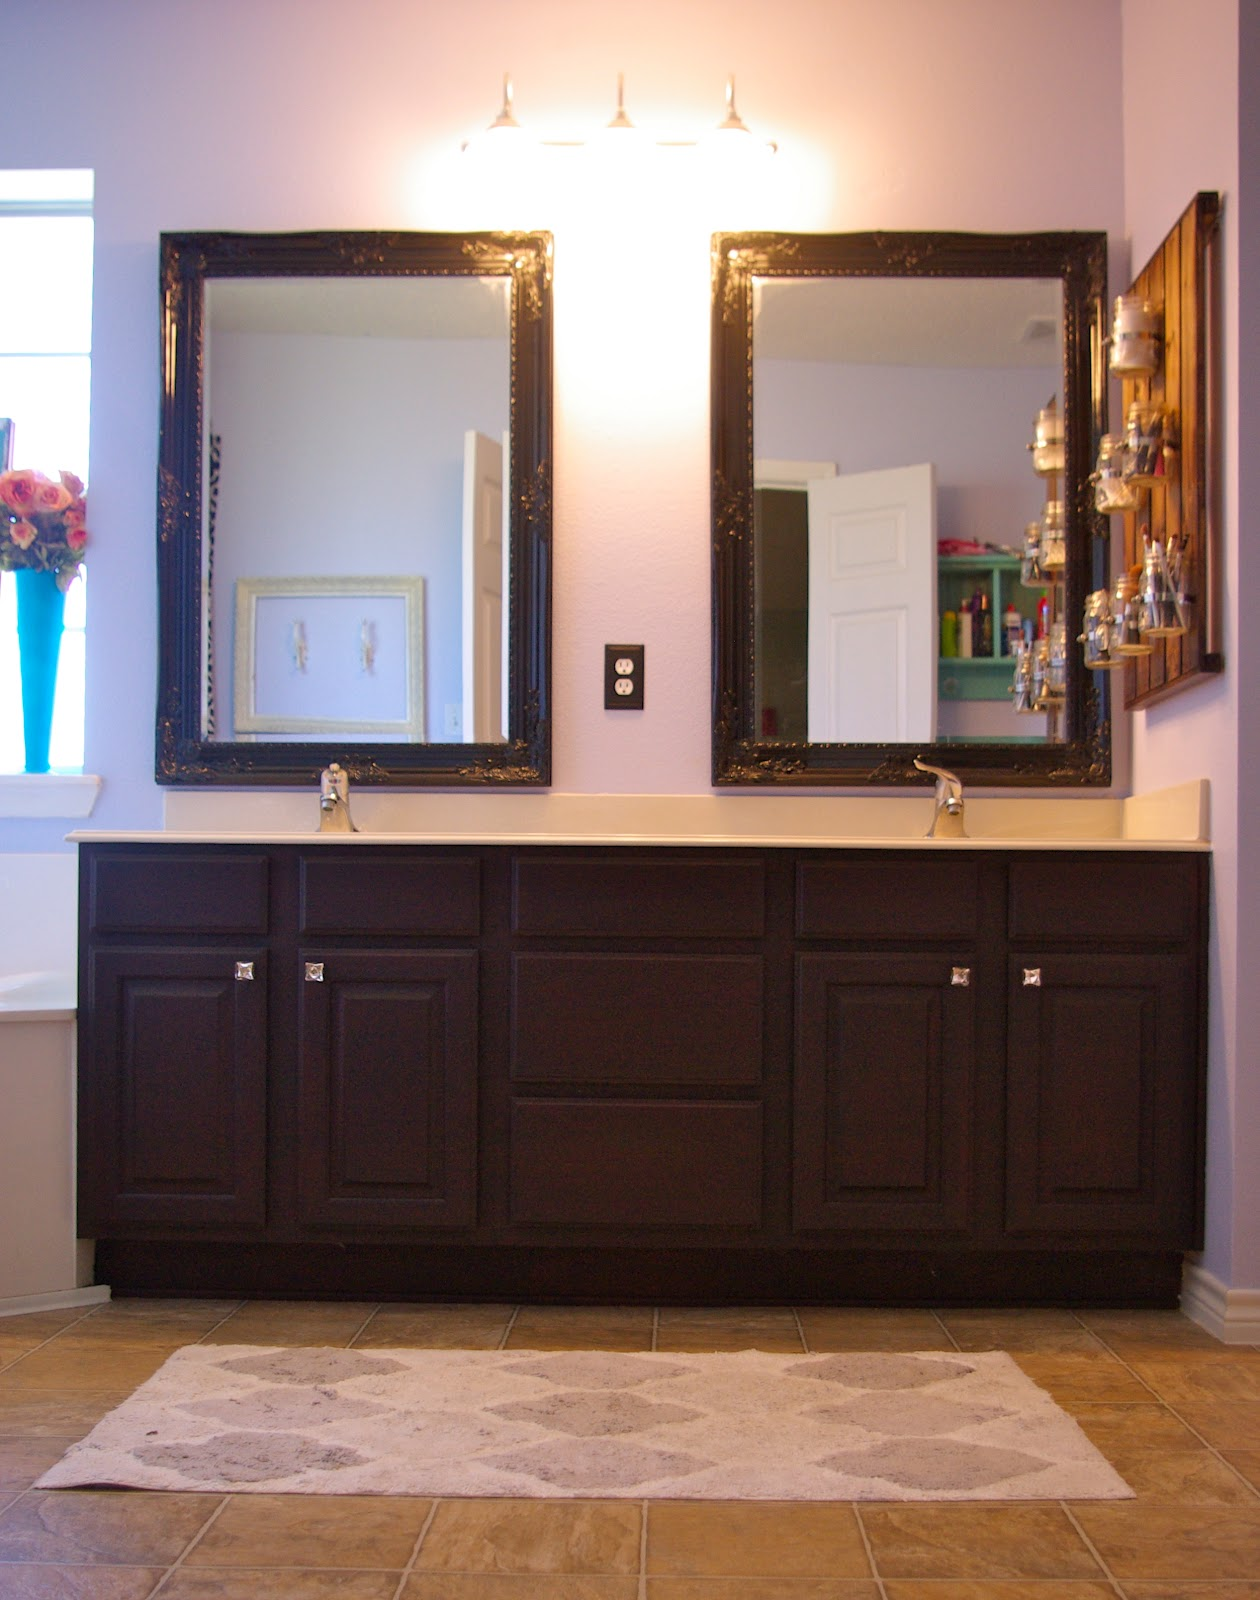 skinny meg: refinished bathroom cabinets